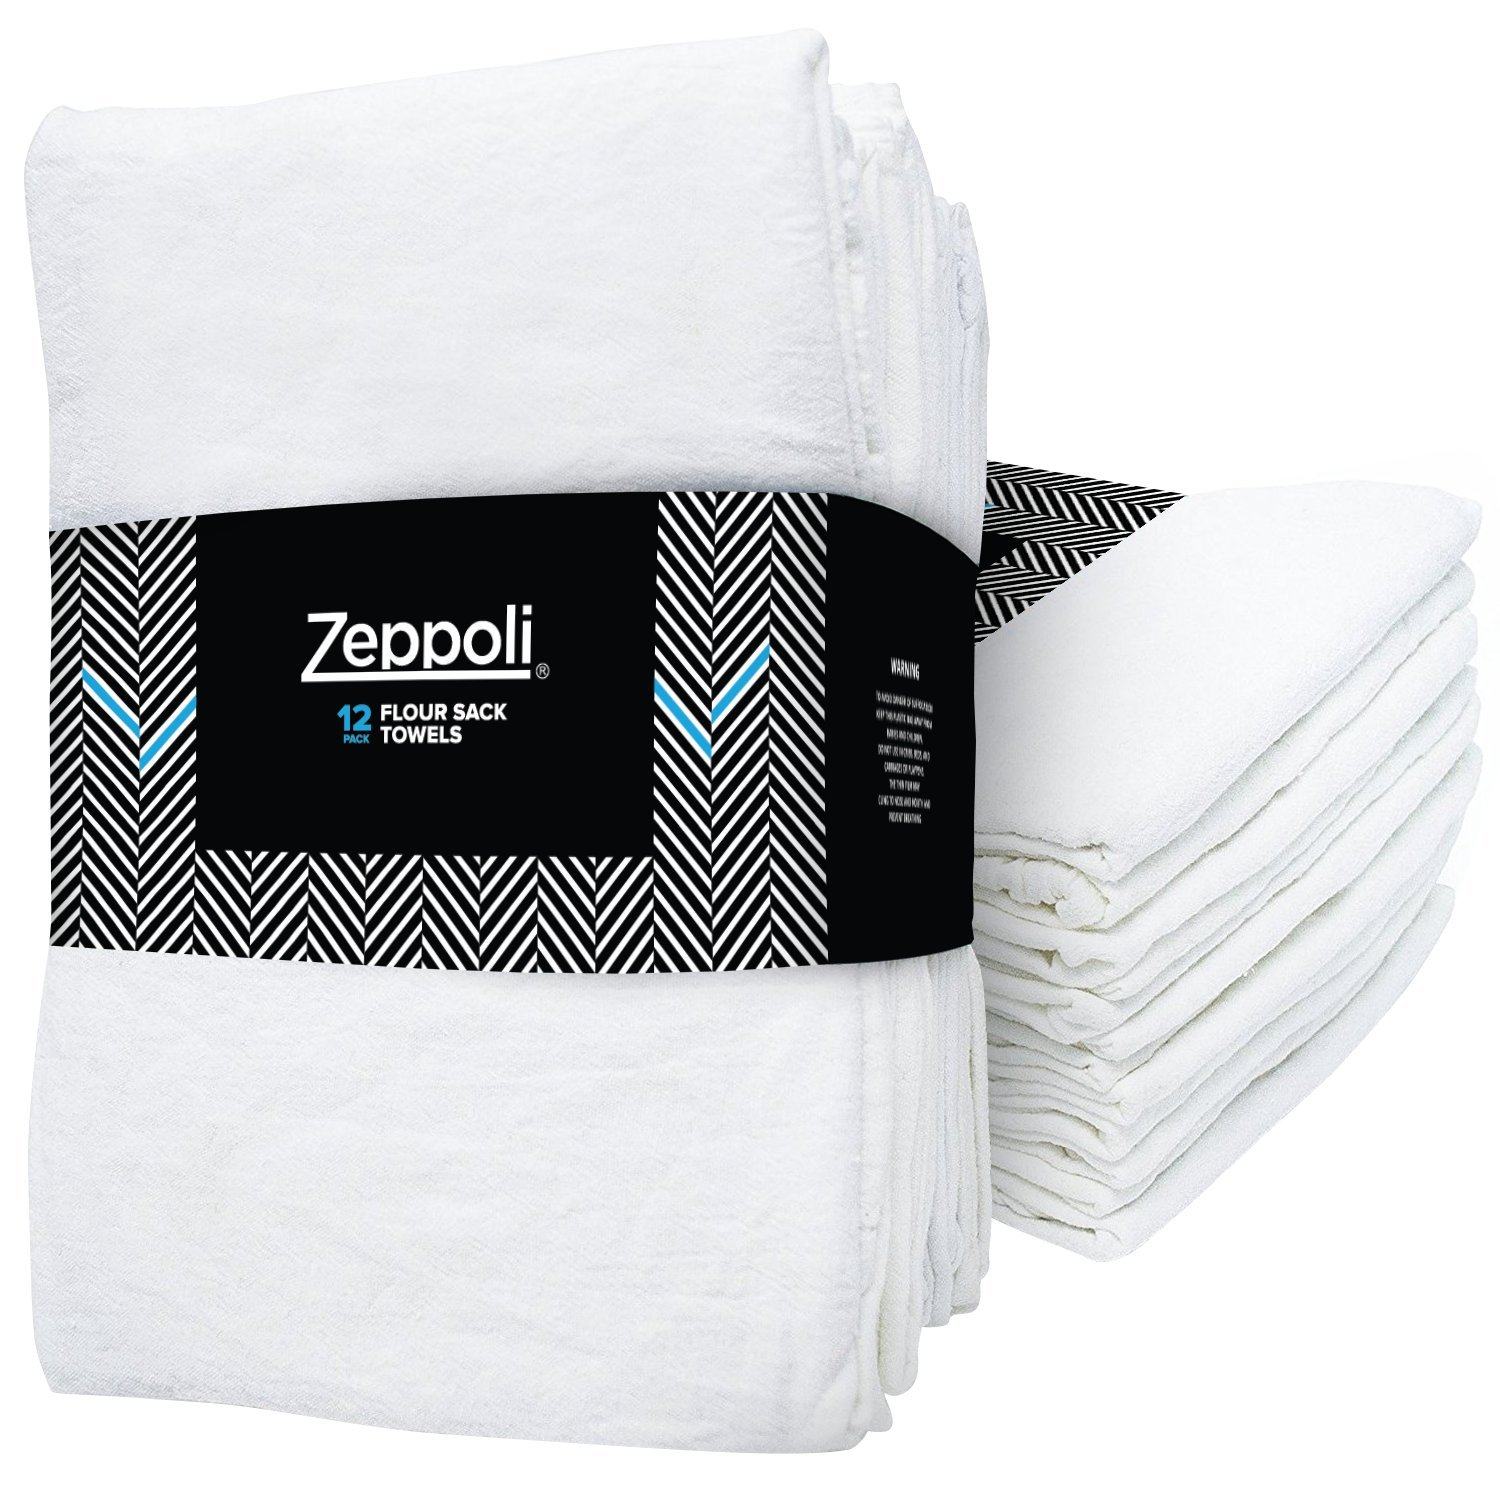 Zeppoli 12-Pack Flour Sack Towels - 31'' x 31'' Kitchen Towels - Absorbent White Dish Towels - 100% Ring Spun Cotton Bar Towels